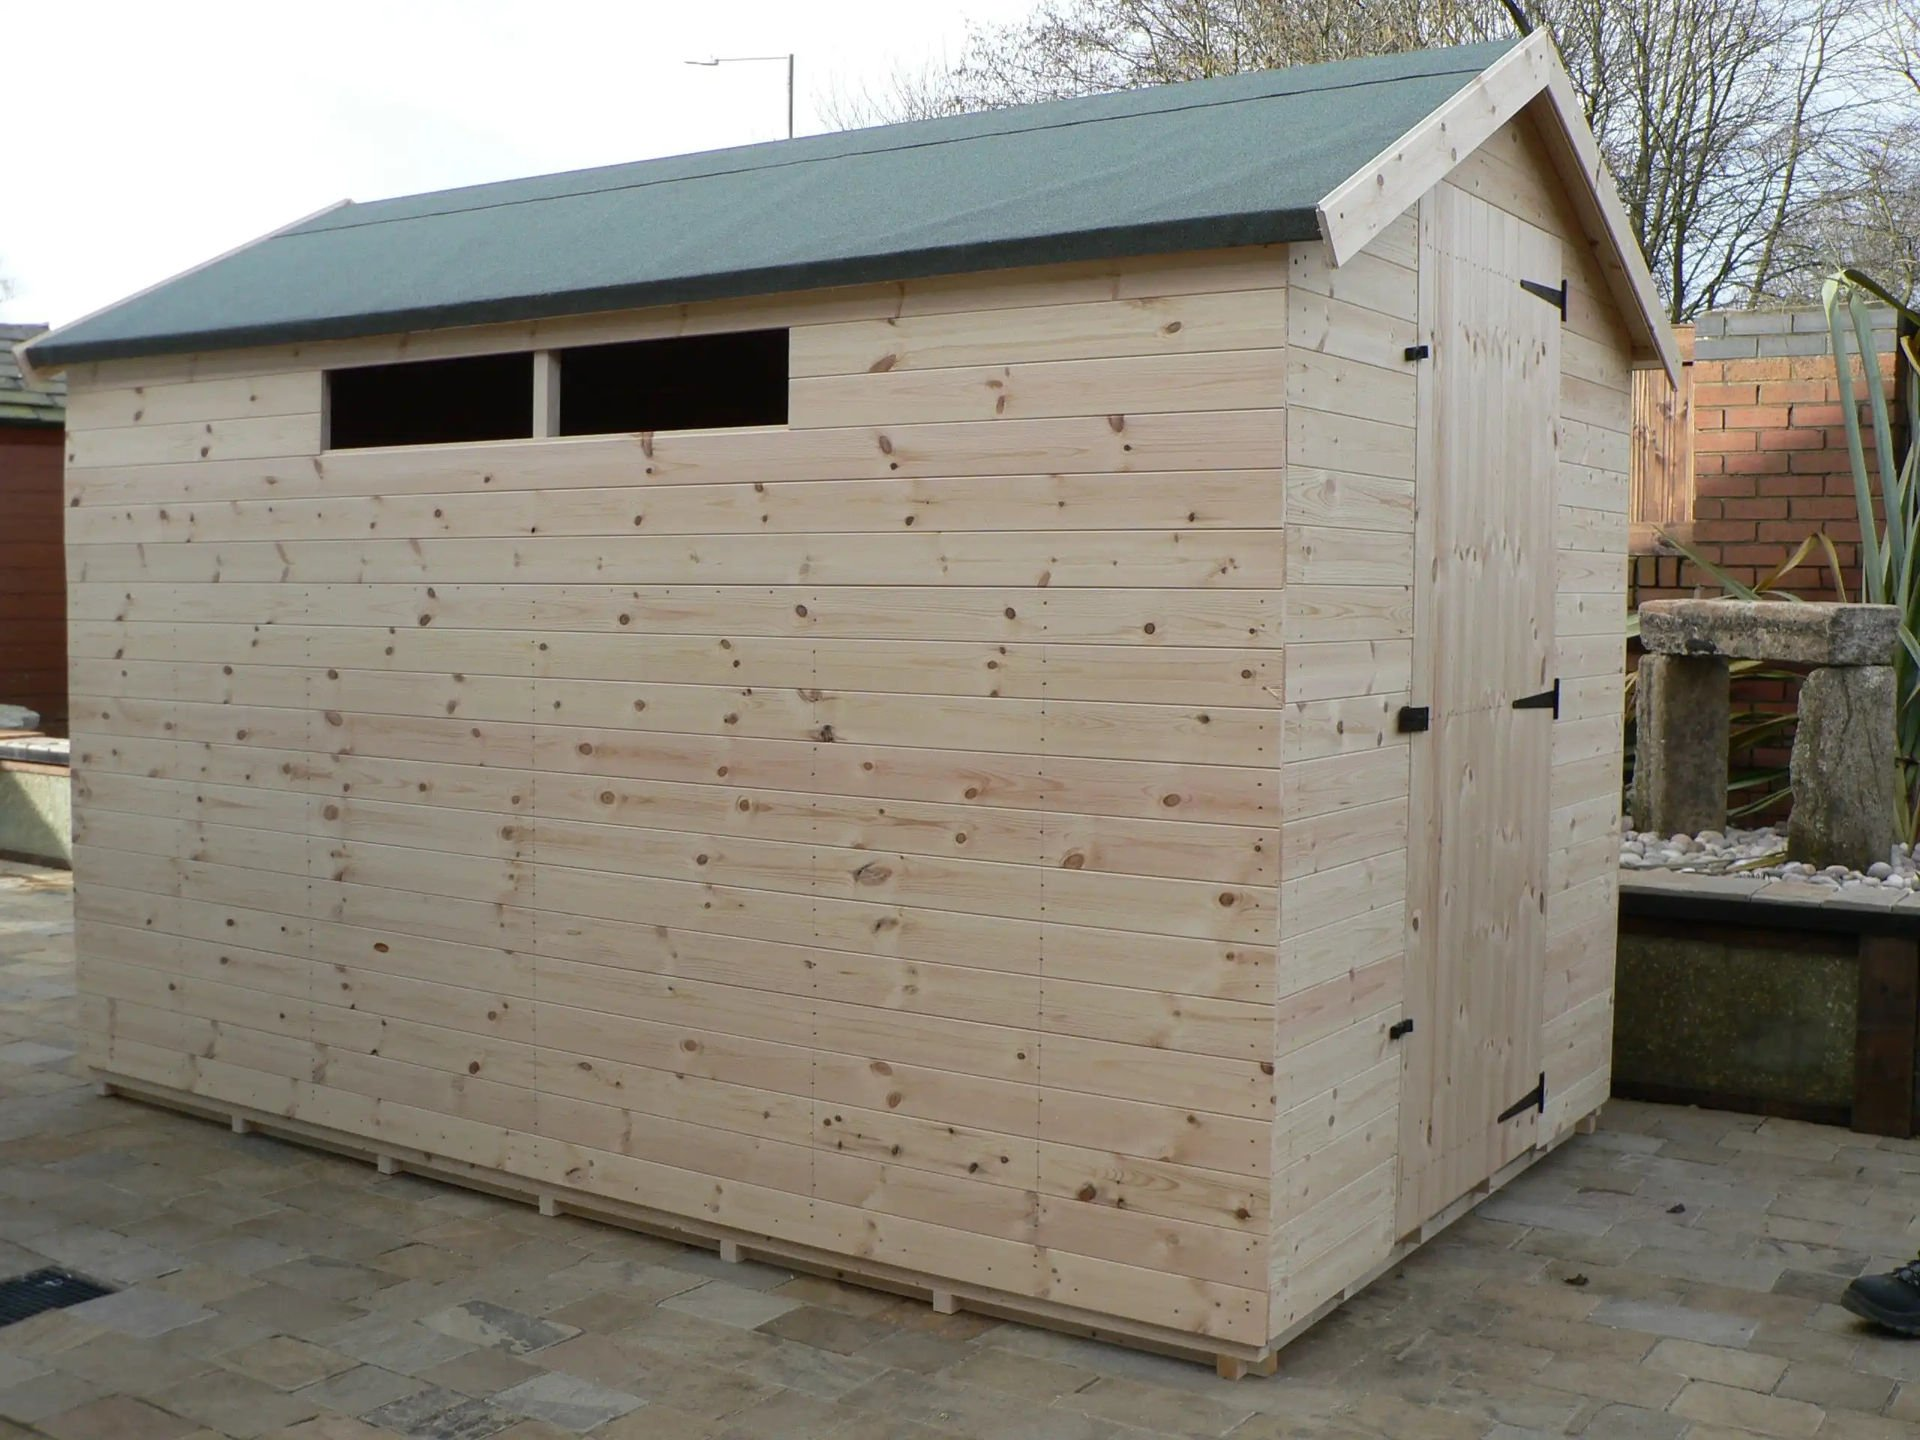 Sheds Manchester - 10' x 6' Apex Shed With Security Windows And The Door Hinged On The Right